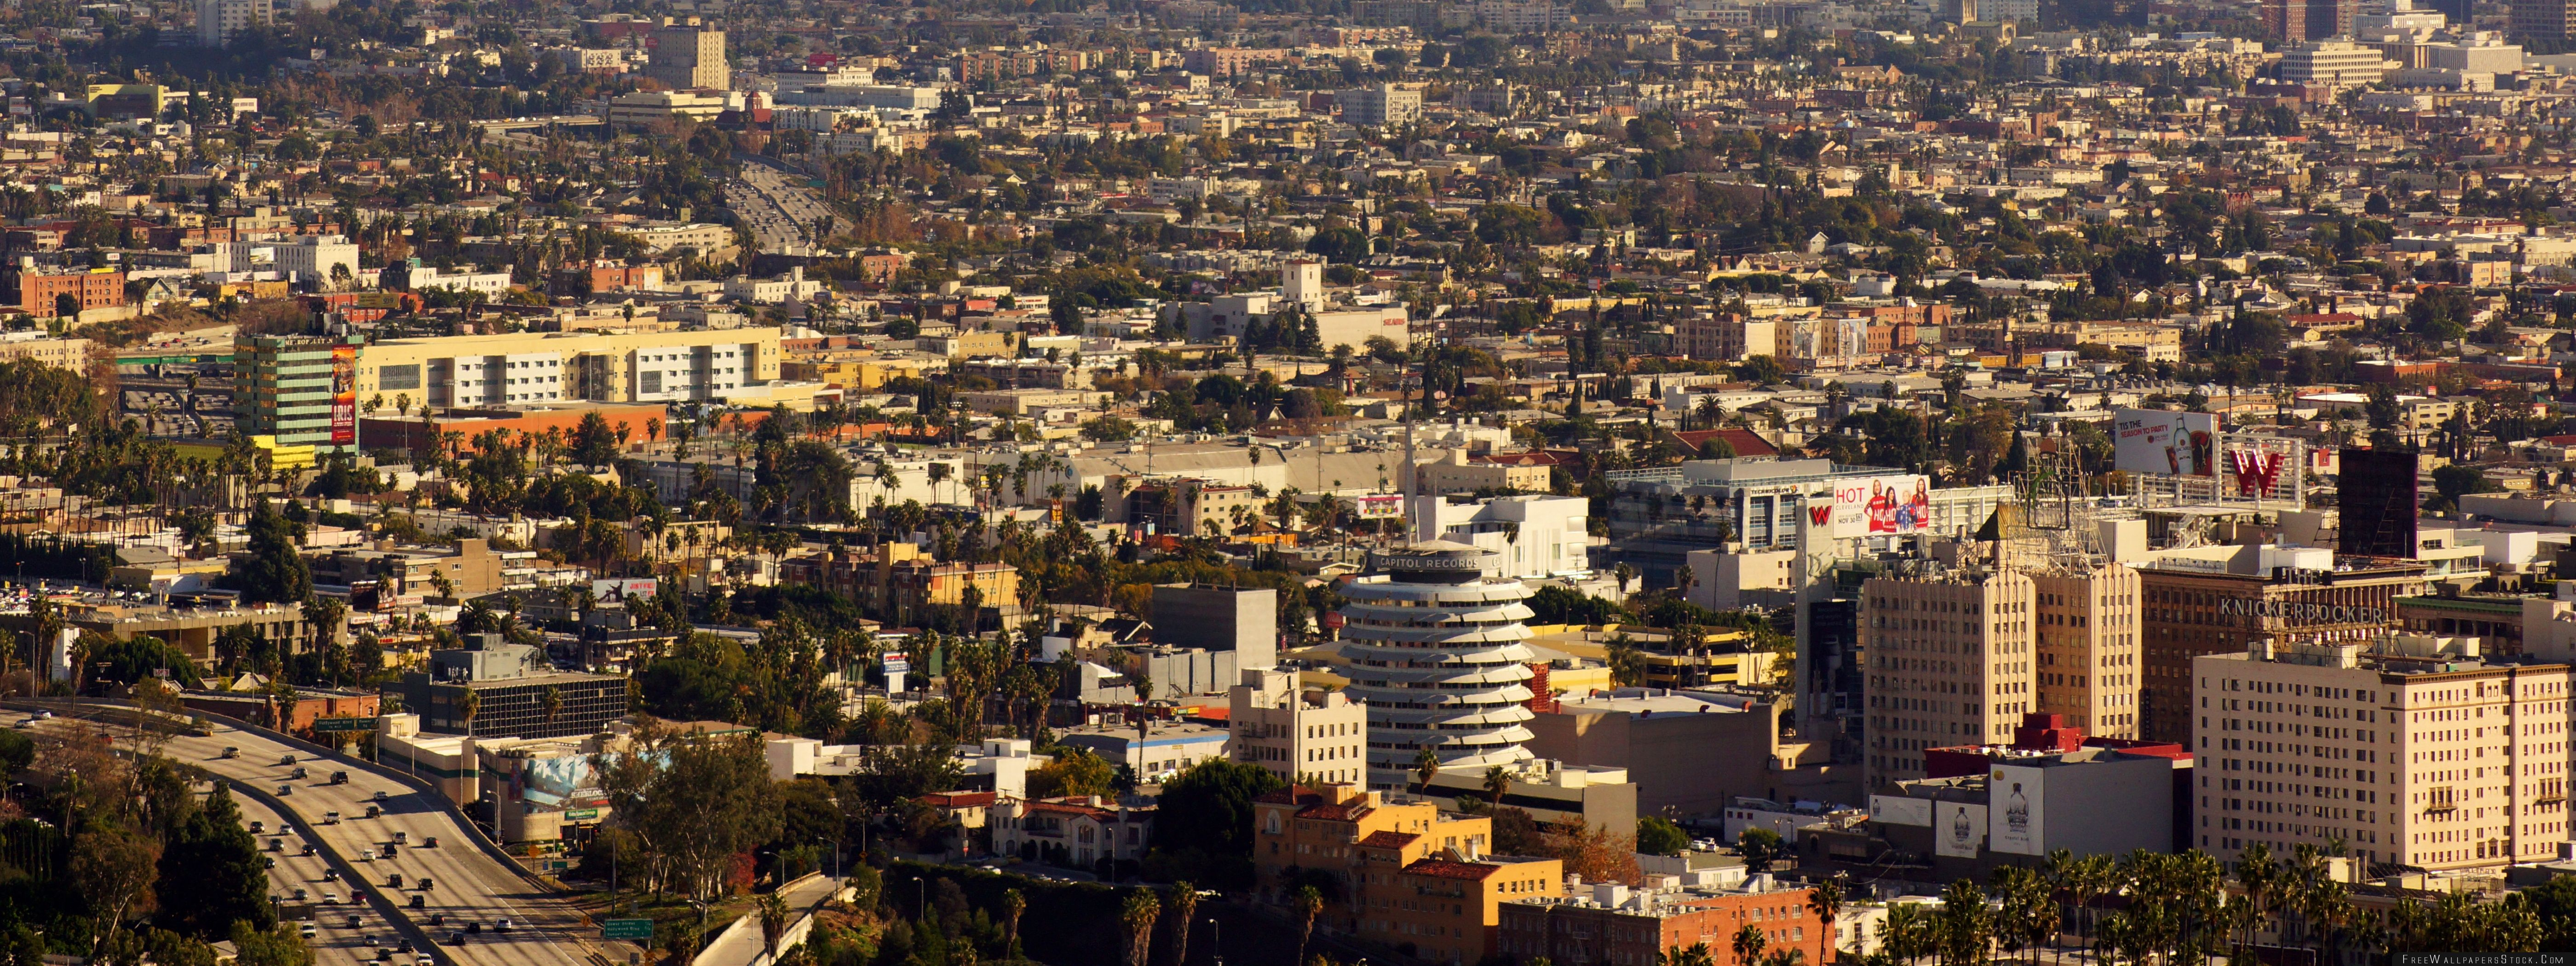 Download Free Wallpaper Los Angeles Hollywood Beverly Hills